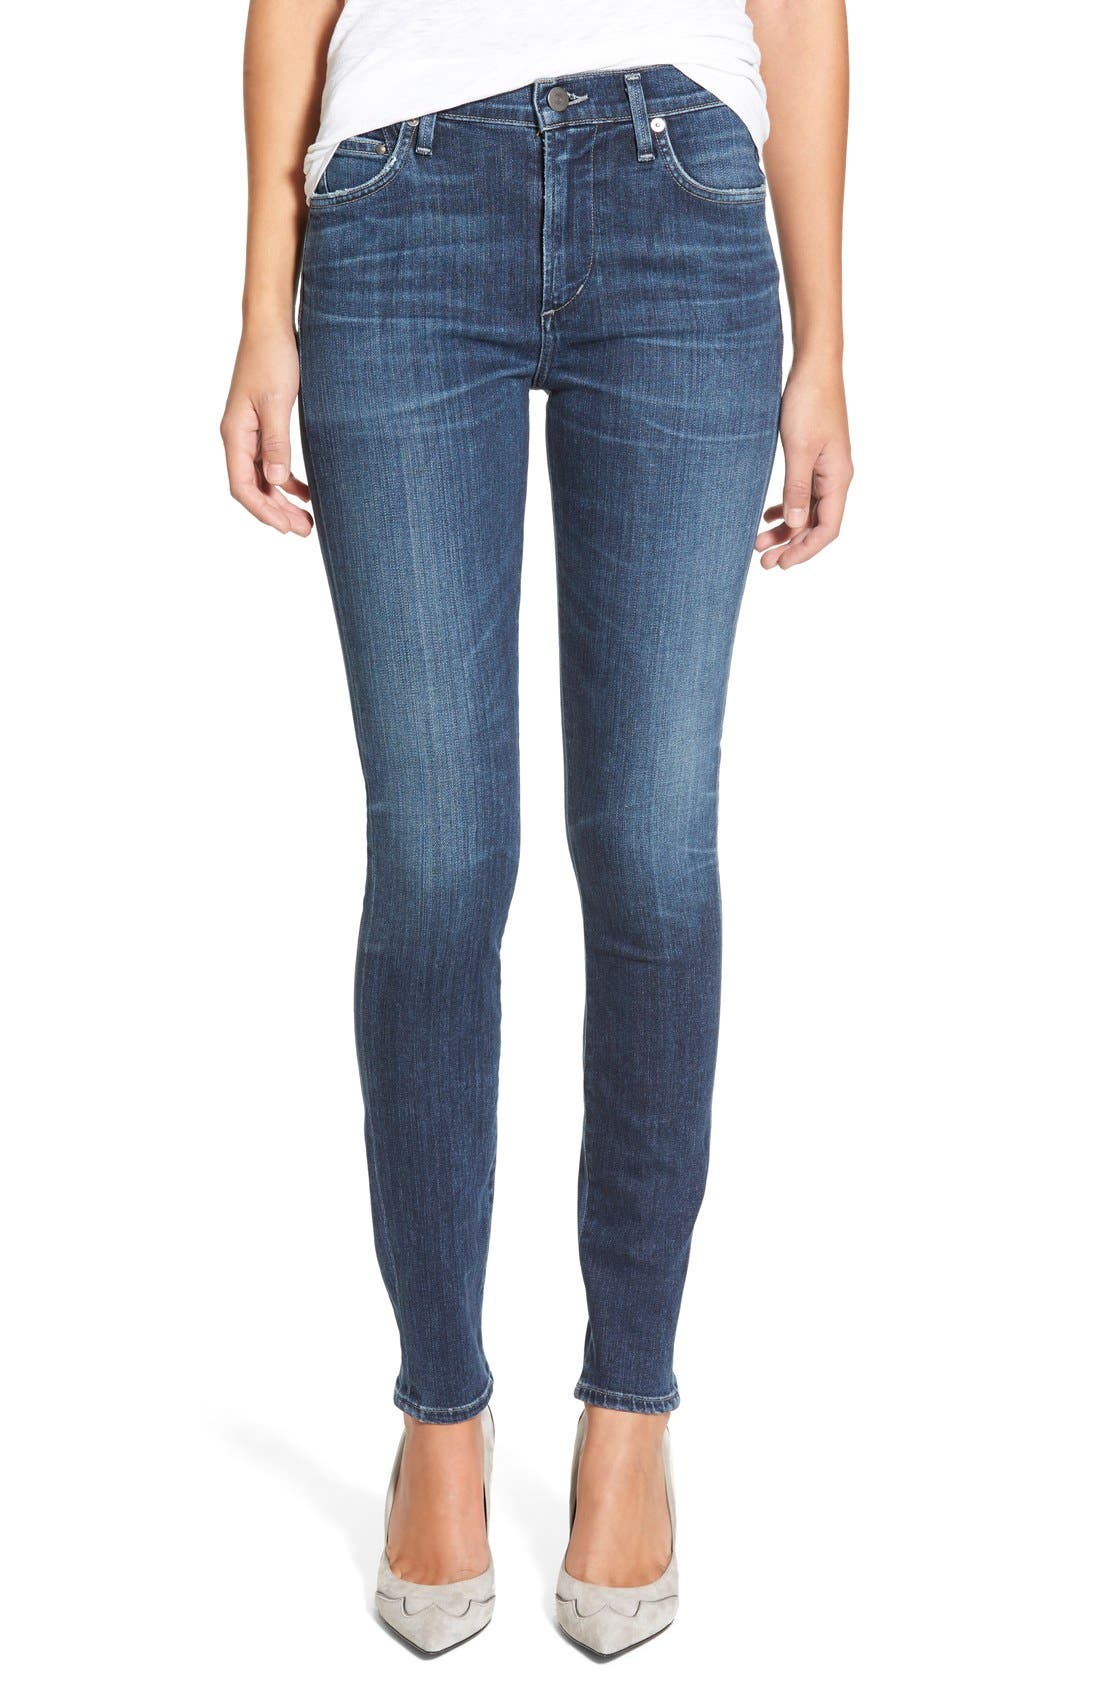 Citizens of Humanity Rocket High WaistSkinny Jeans (Albion)